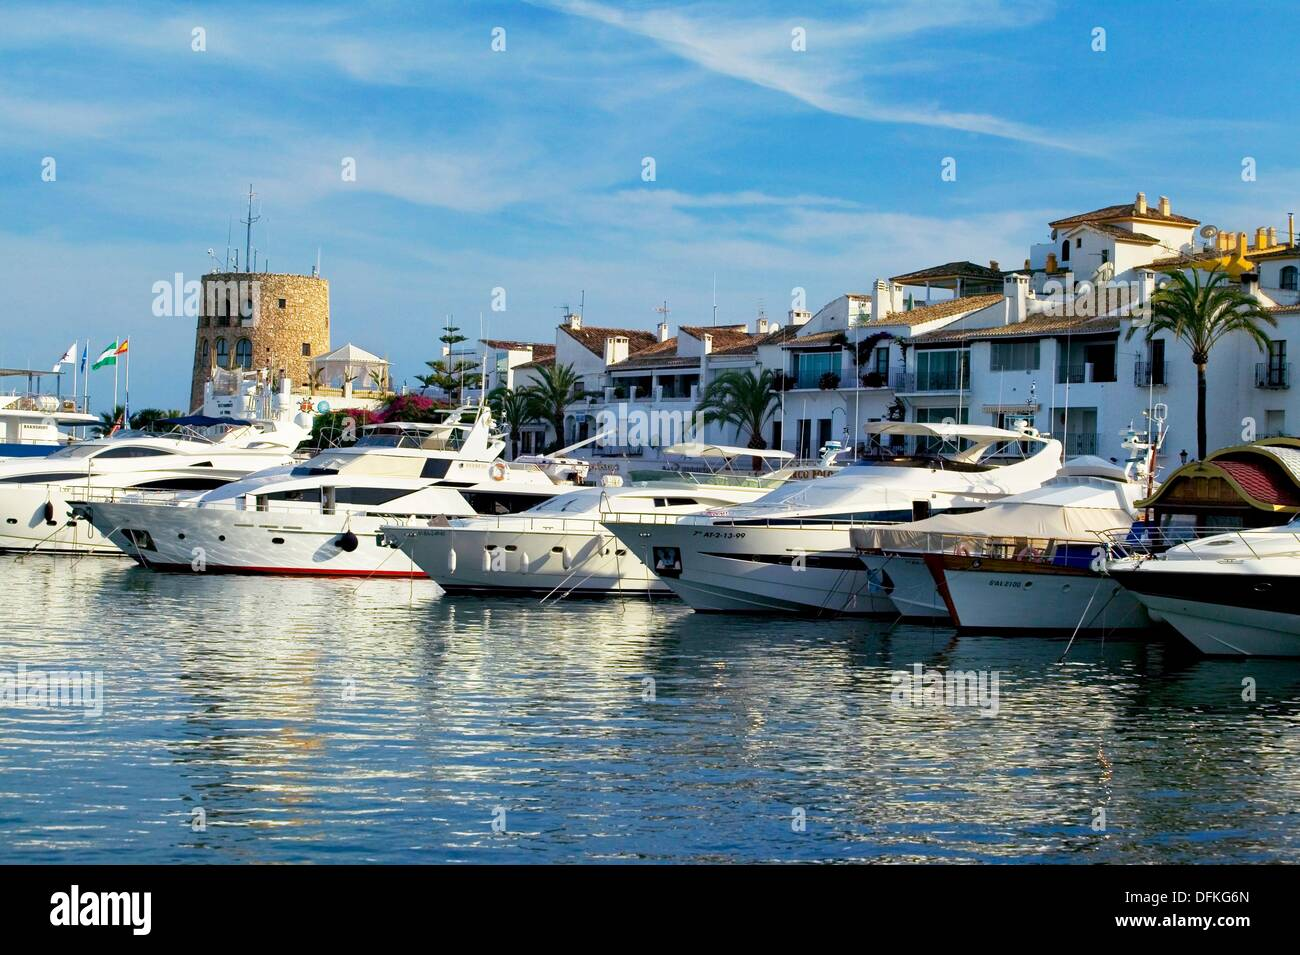 Exclusive yacht harbour of Puerto Banu´s, near Marbella  Costa del Sol, Ma´laga province  Andalusia, Spain - Stock Image